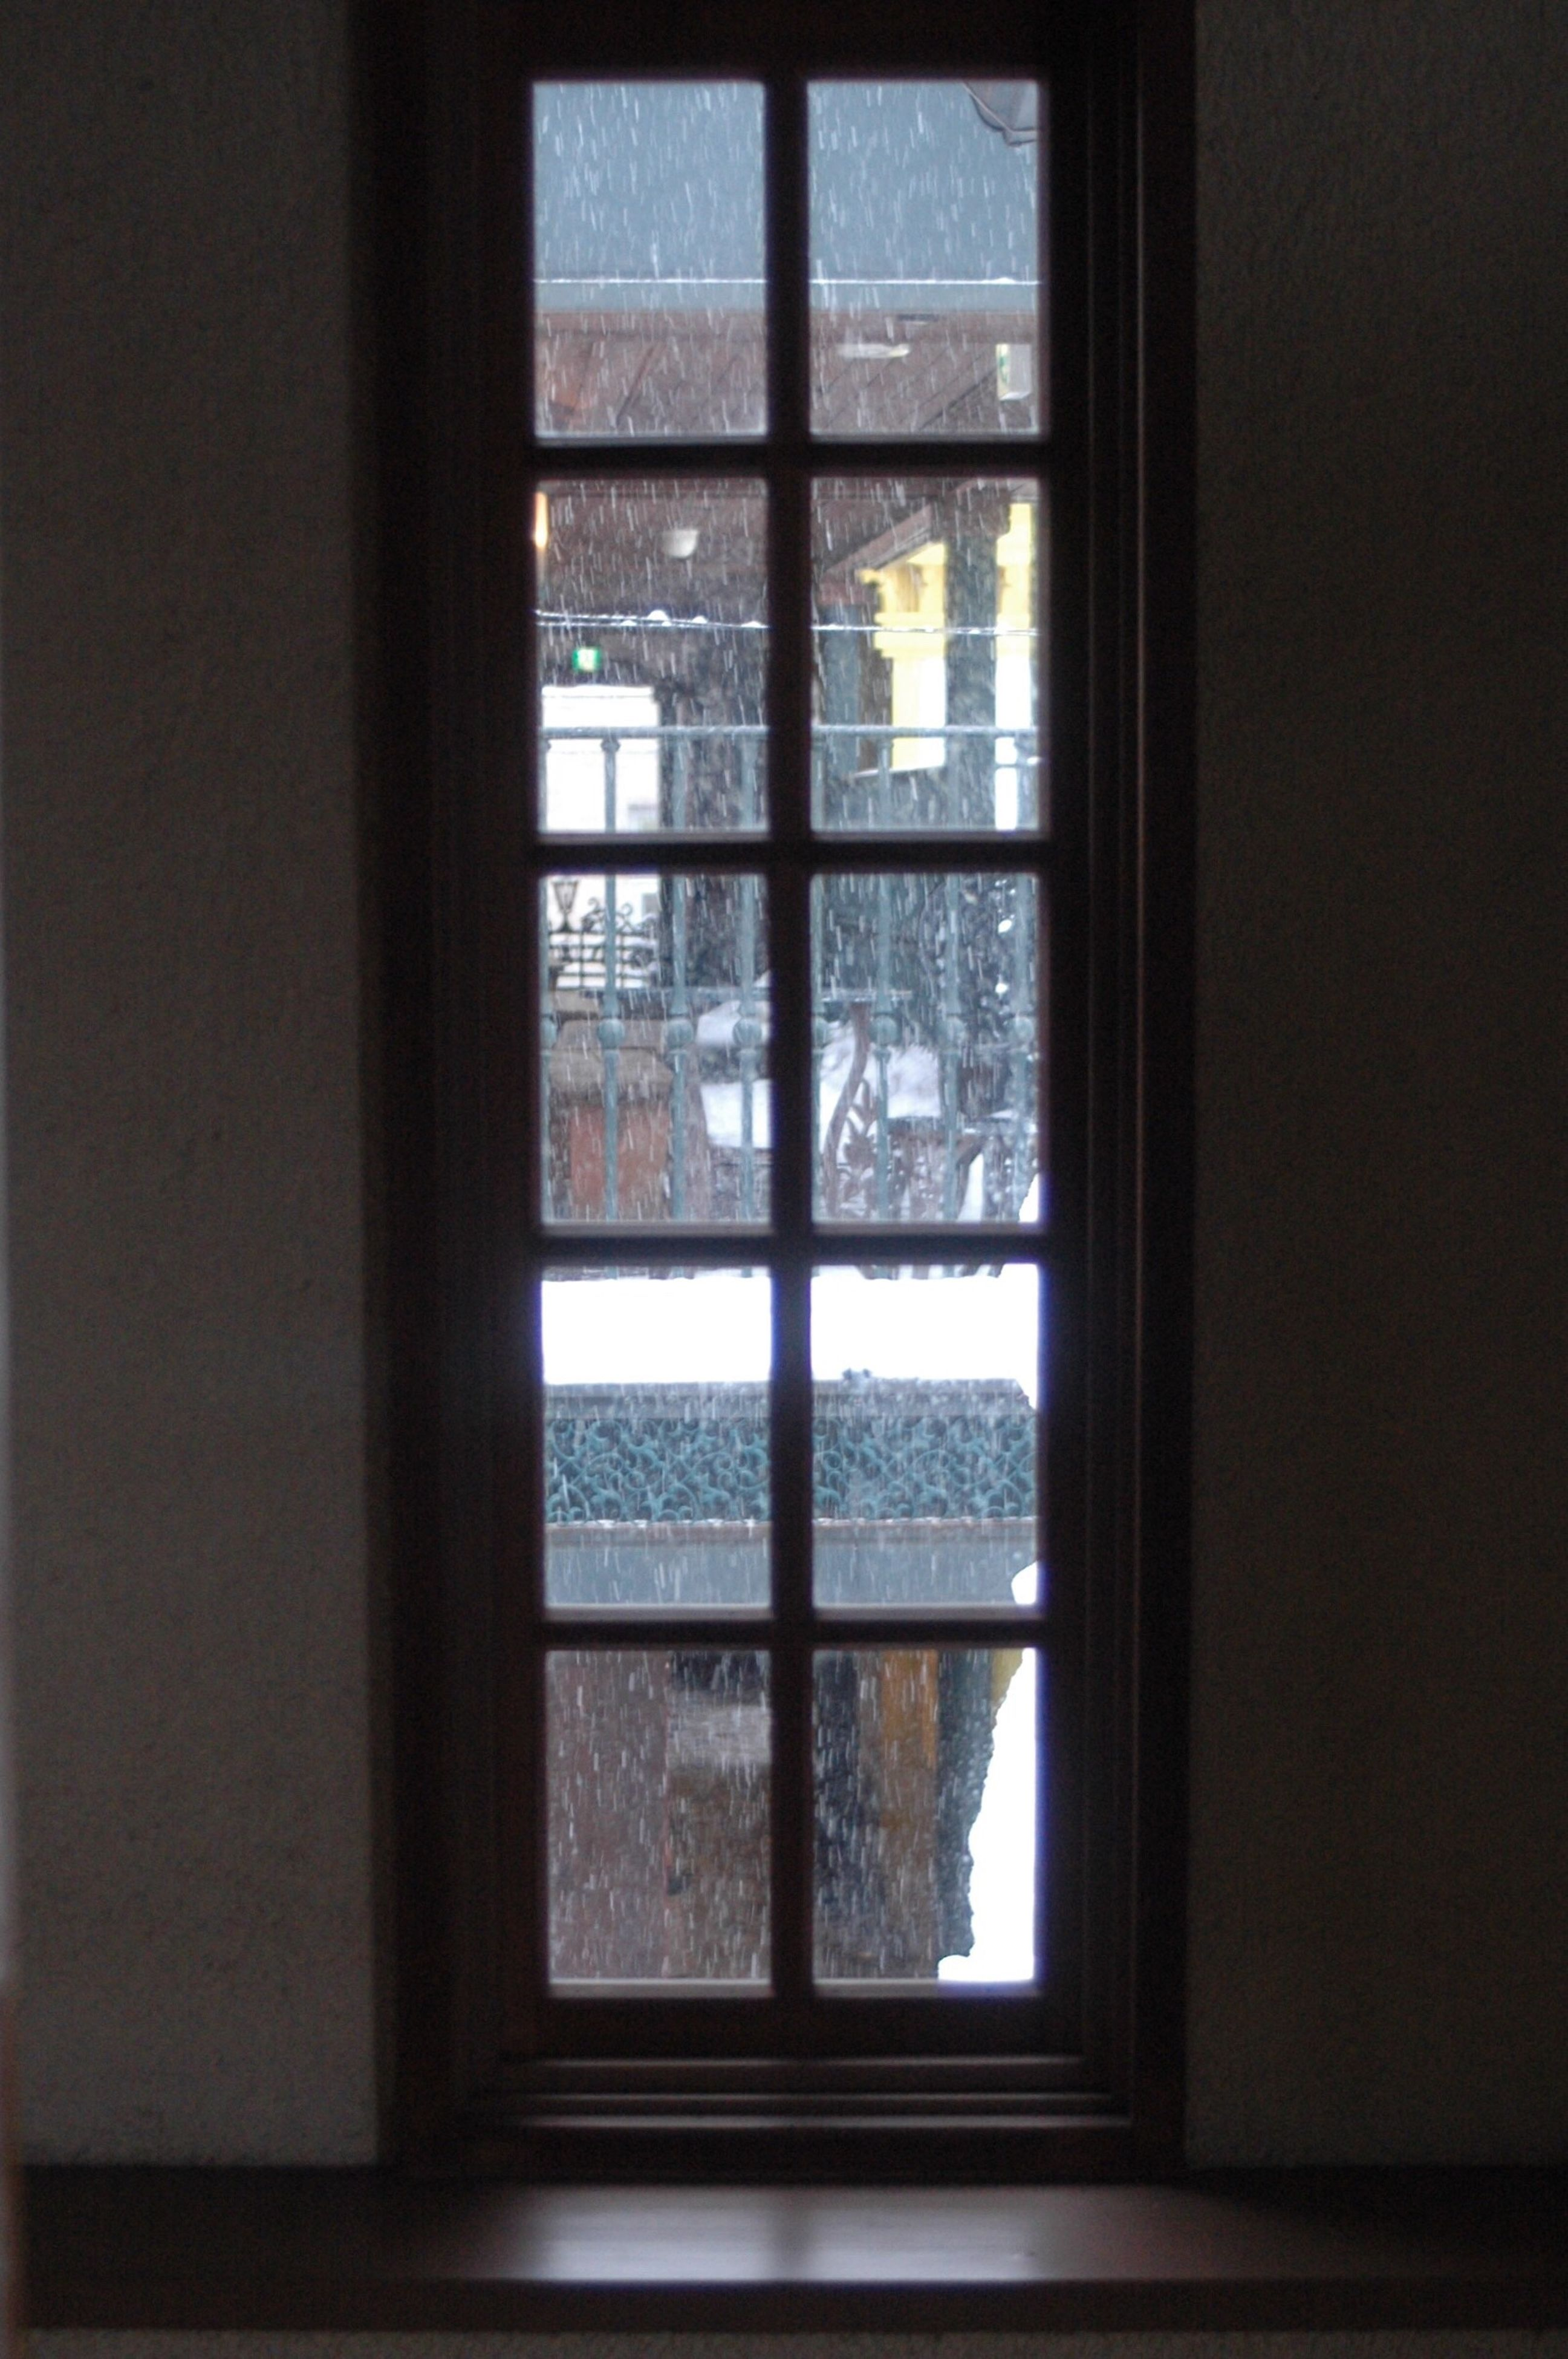 window, indoors, transparent, day, architecture, built structure, no people, domestic room, frosted glass